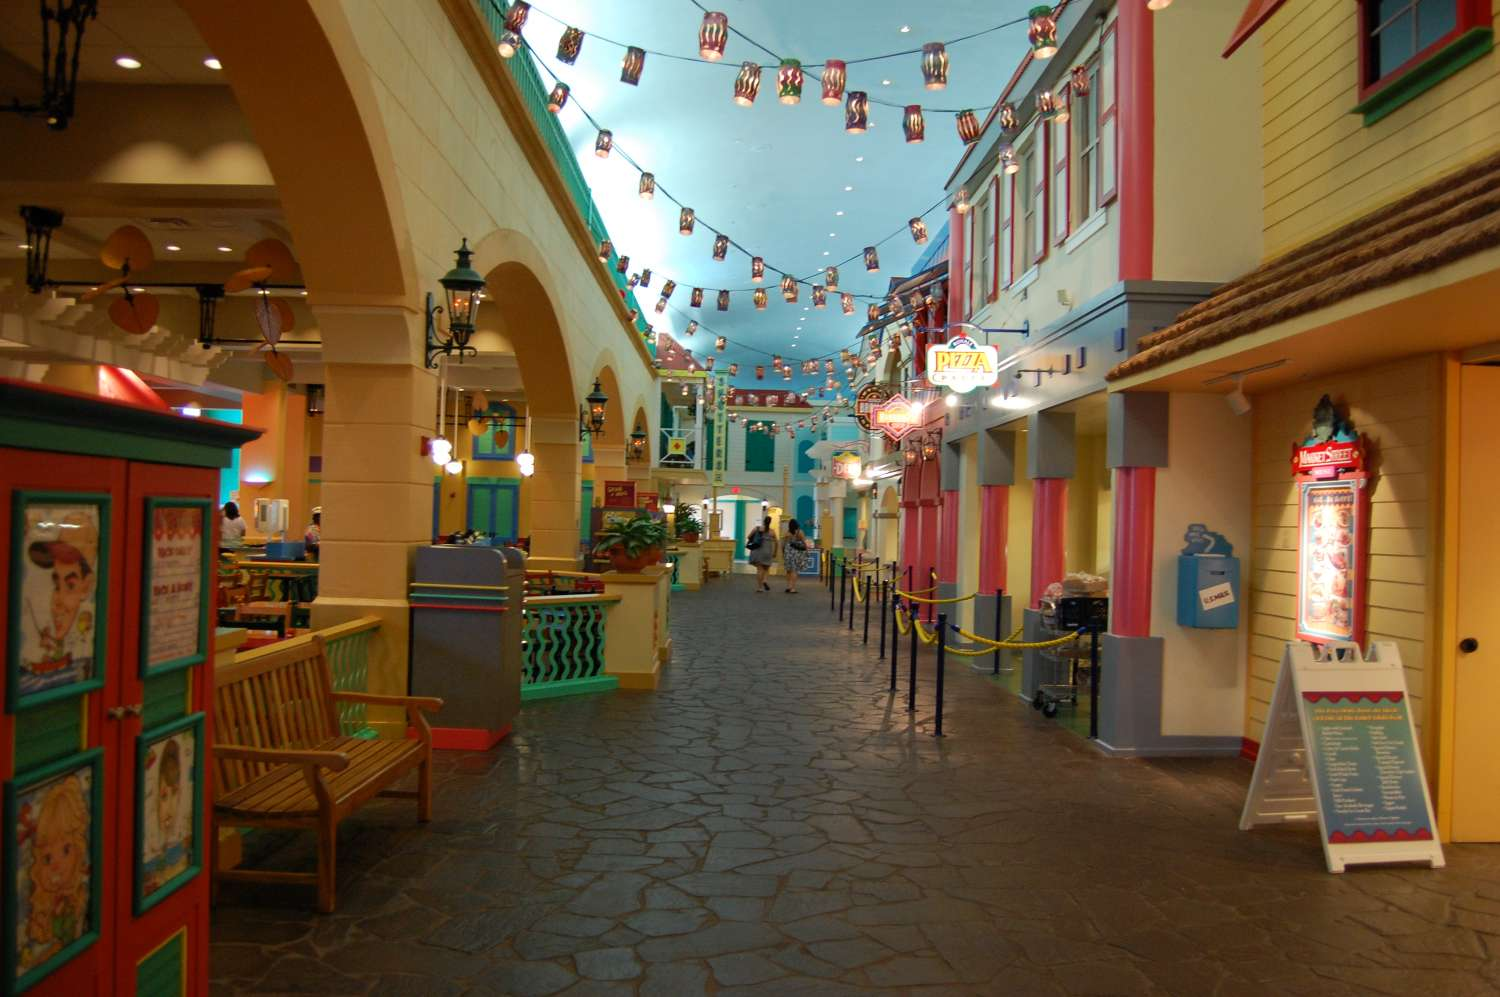 Disney's-Caribbean-Beach-Resort-restaurants.jpg